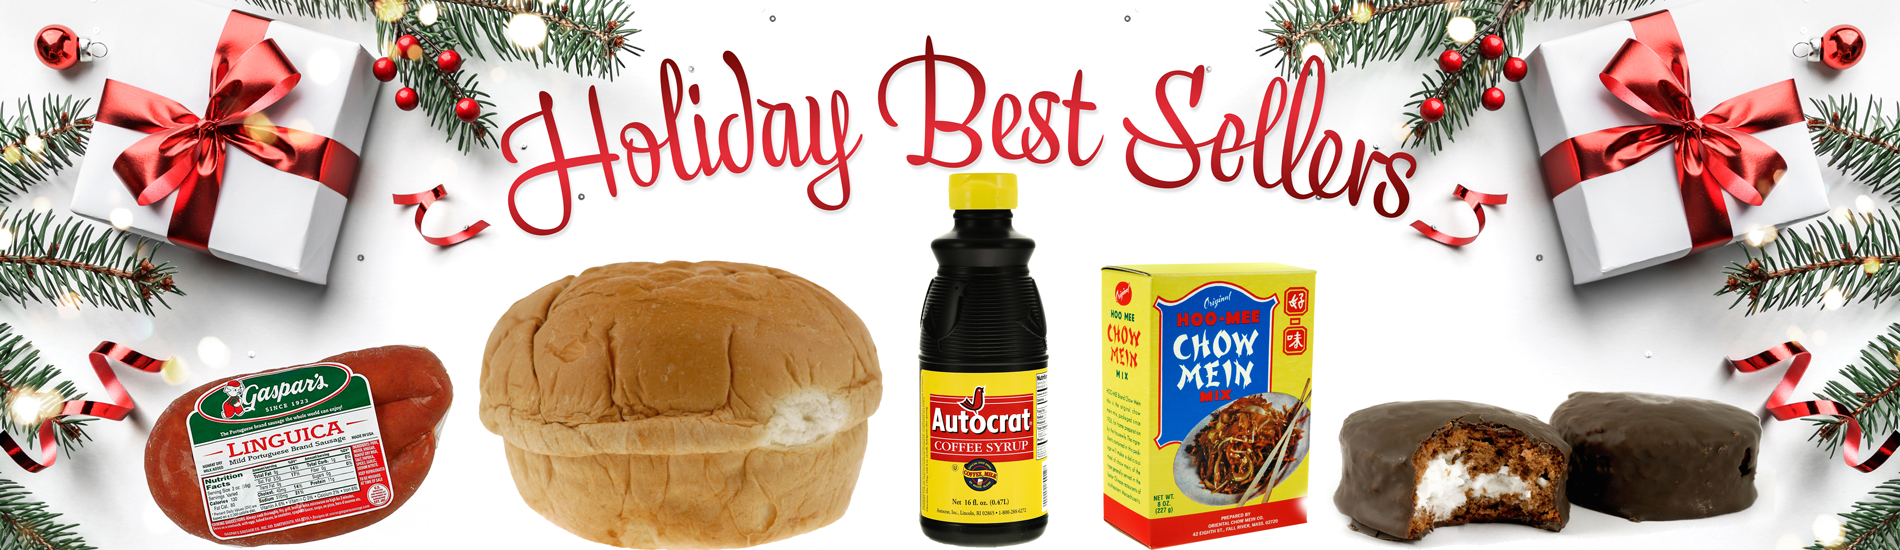 Holiday-Best-Sellers